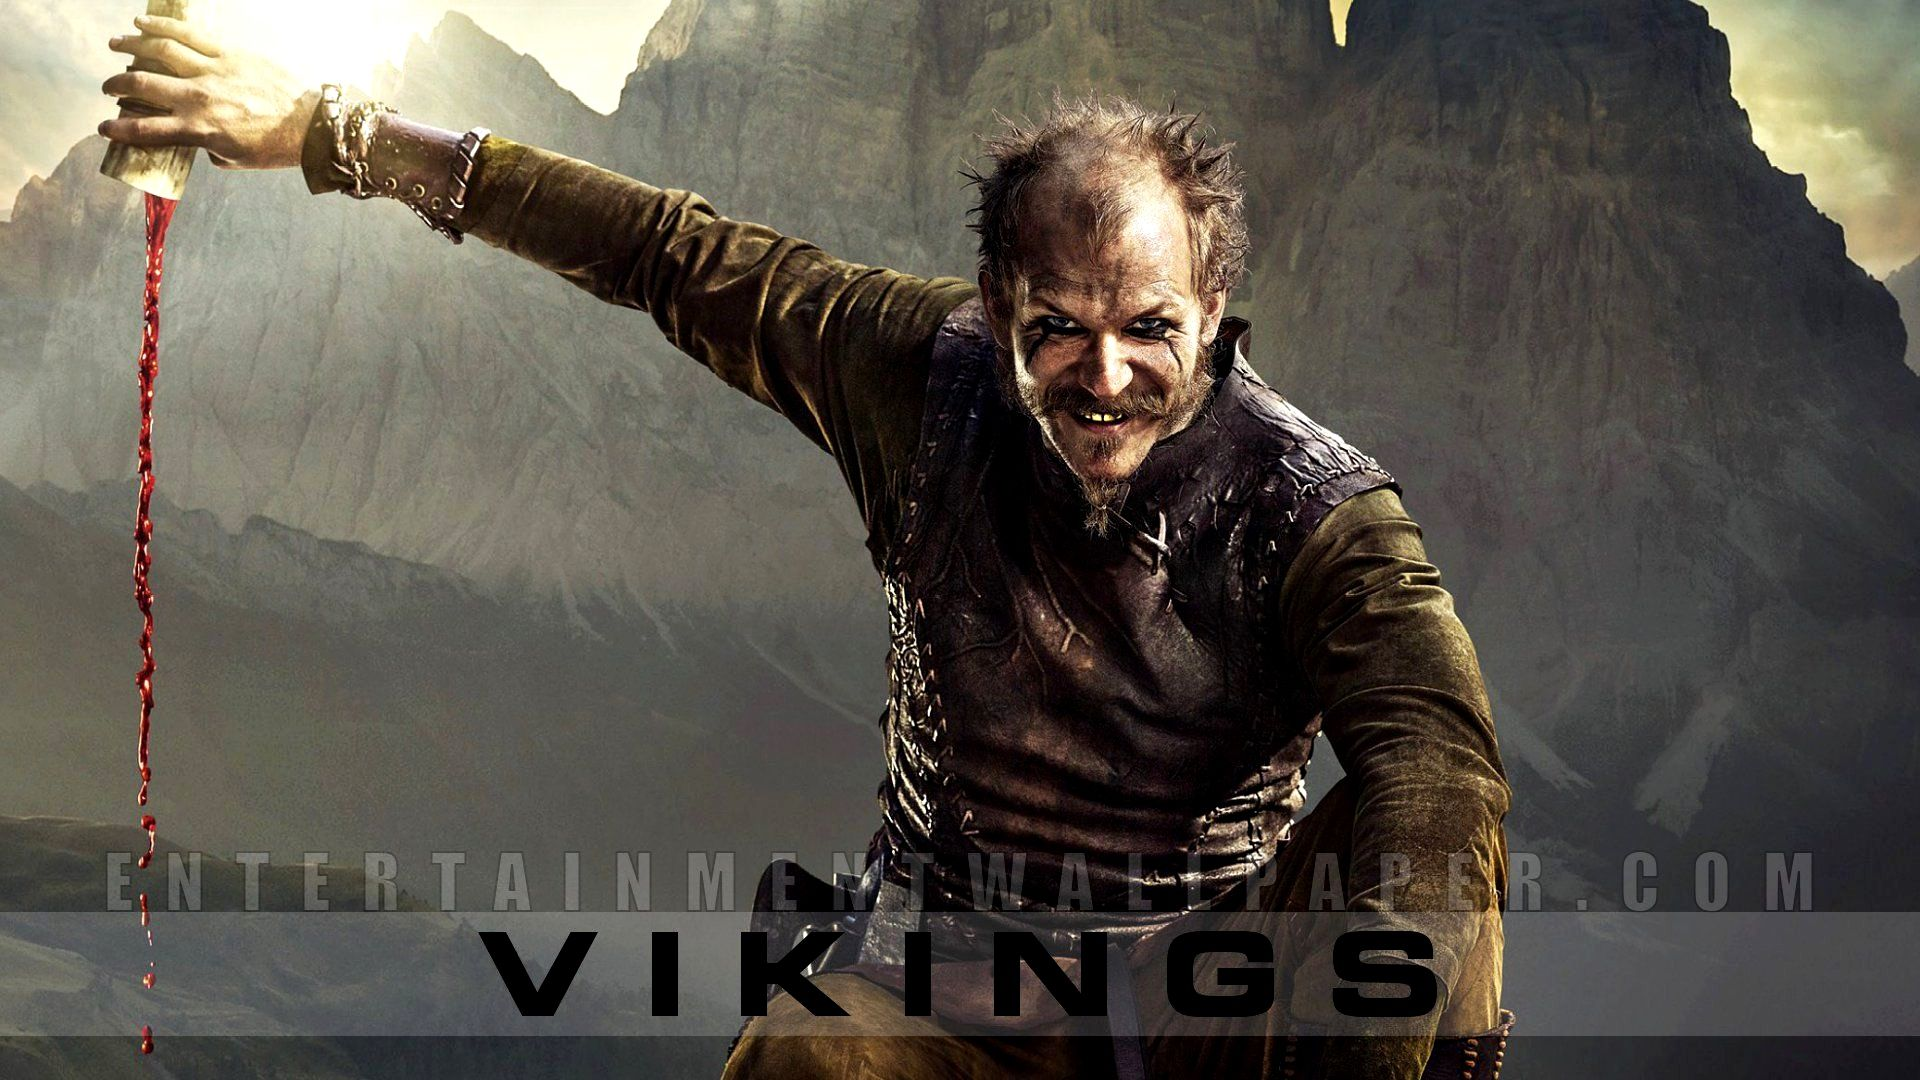 Hd Wallpapers For Pc Vikings